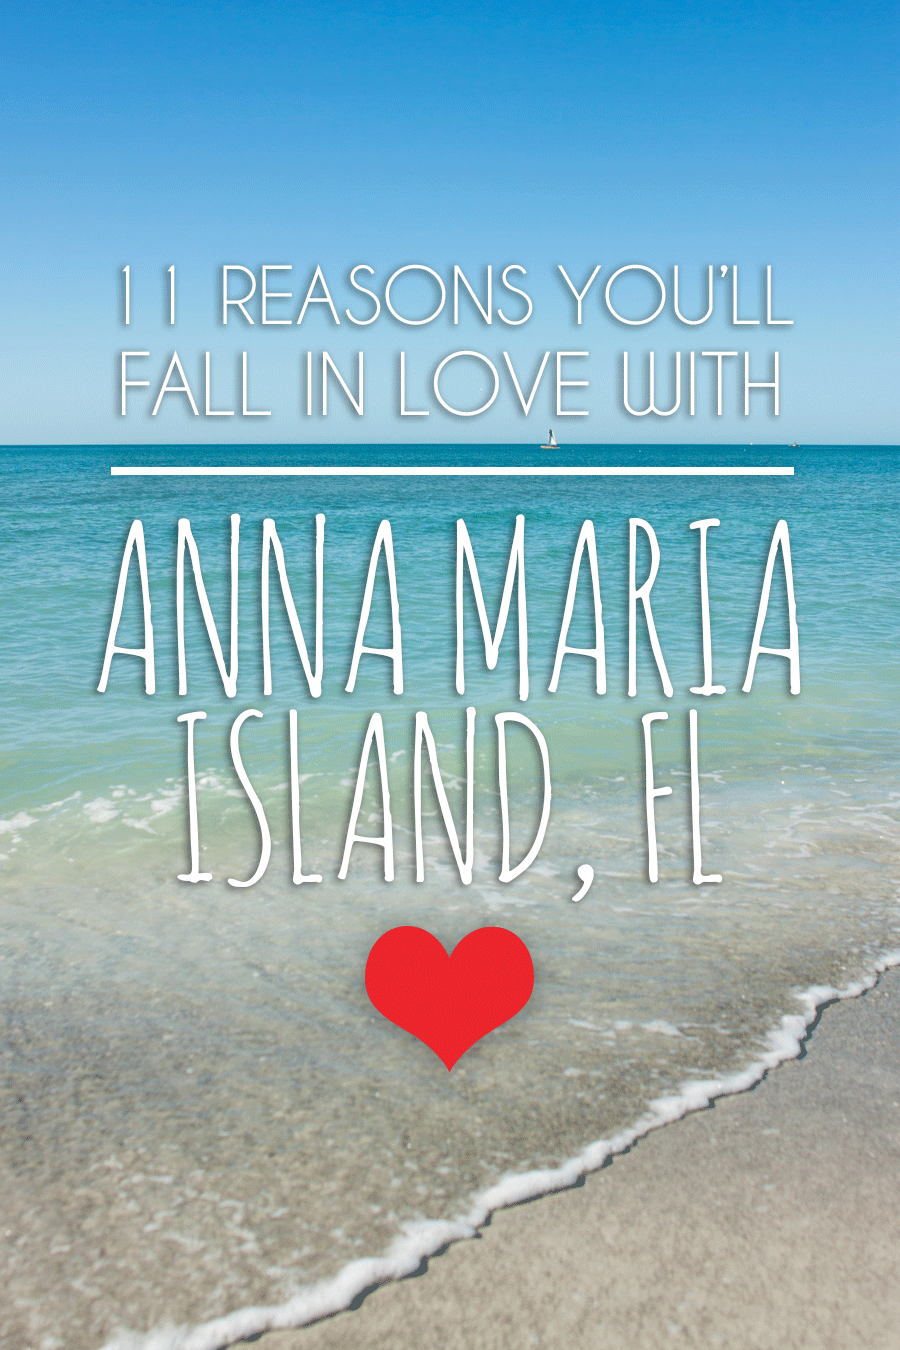 11 reasons youll fall in love with anna maria island travel 11 reasons youll fall in love with anna maria island nvjuhfo Images